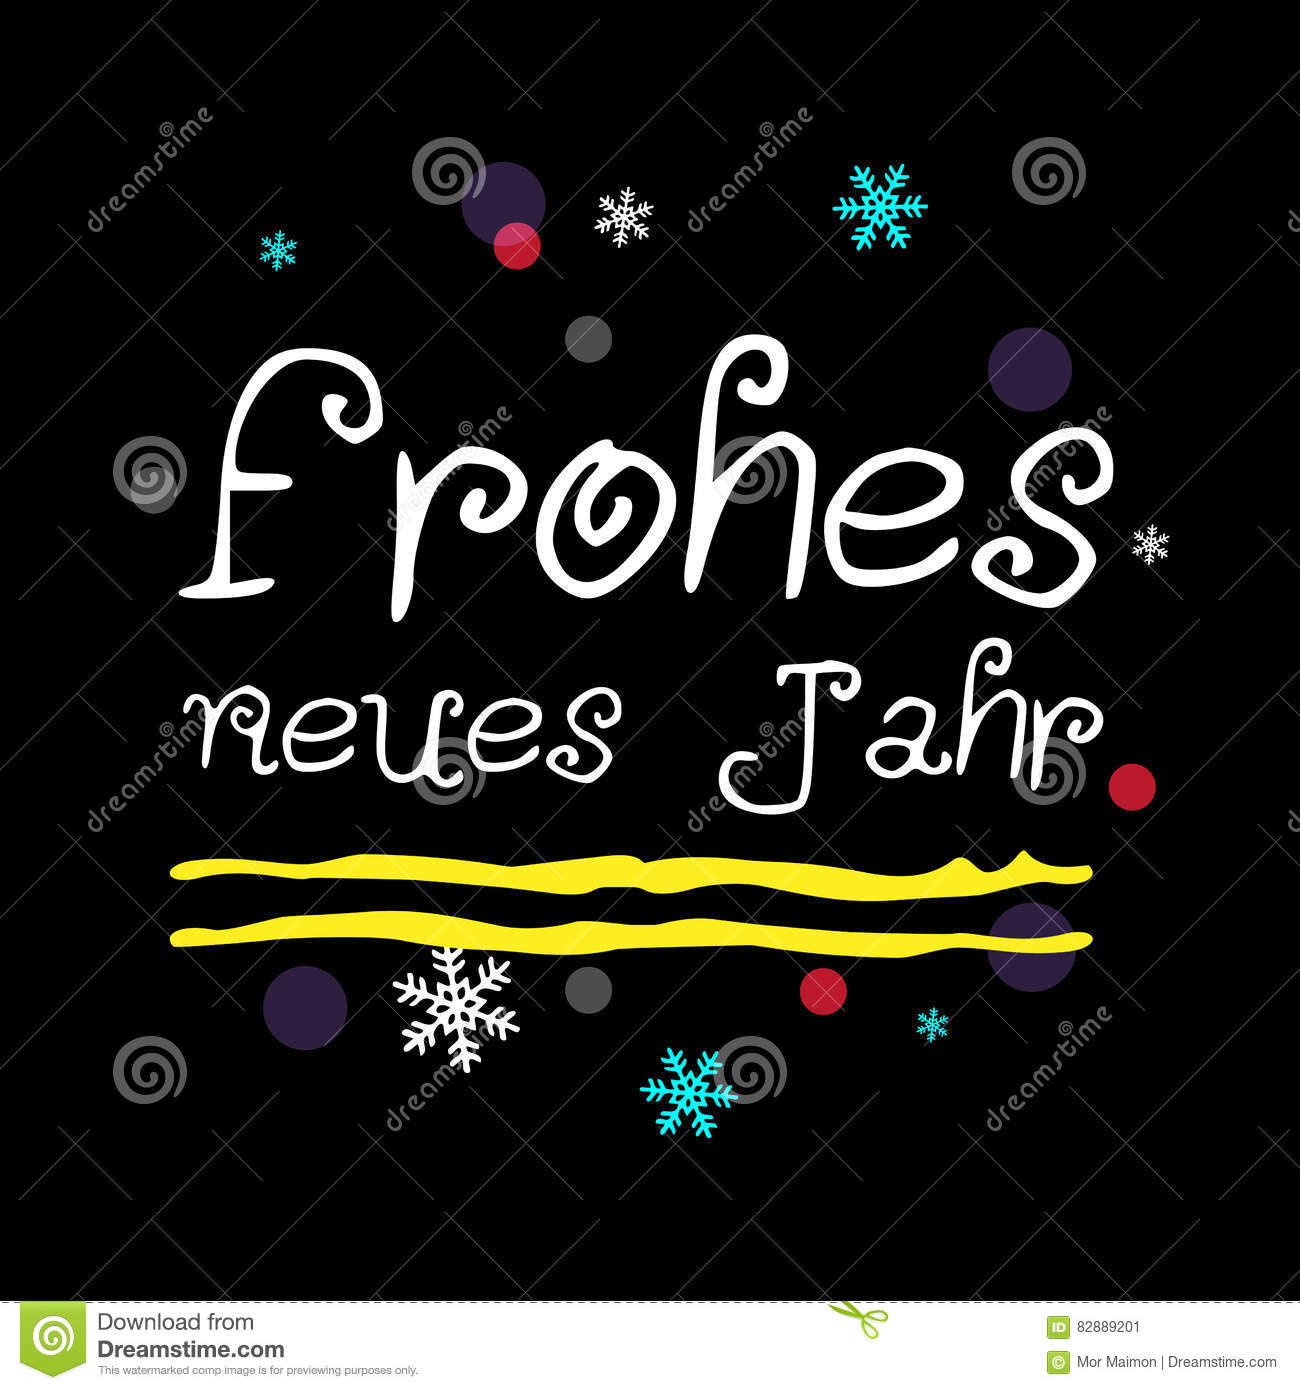 Frohes Neues Jahr. Happy New Year German Greeting. Stock ...